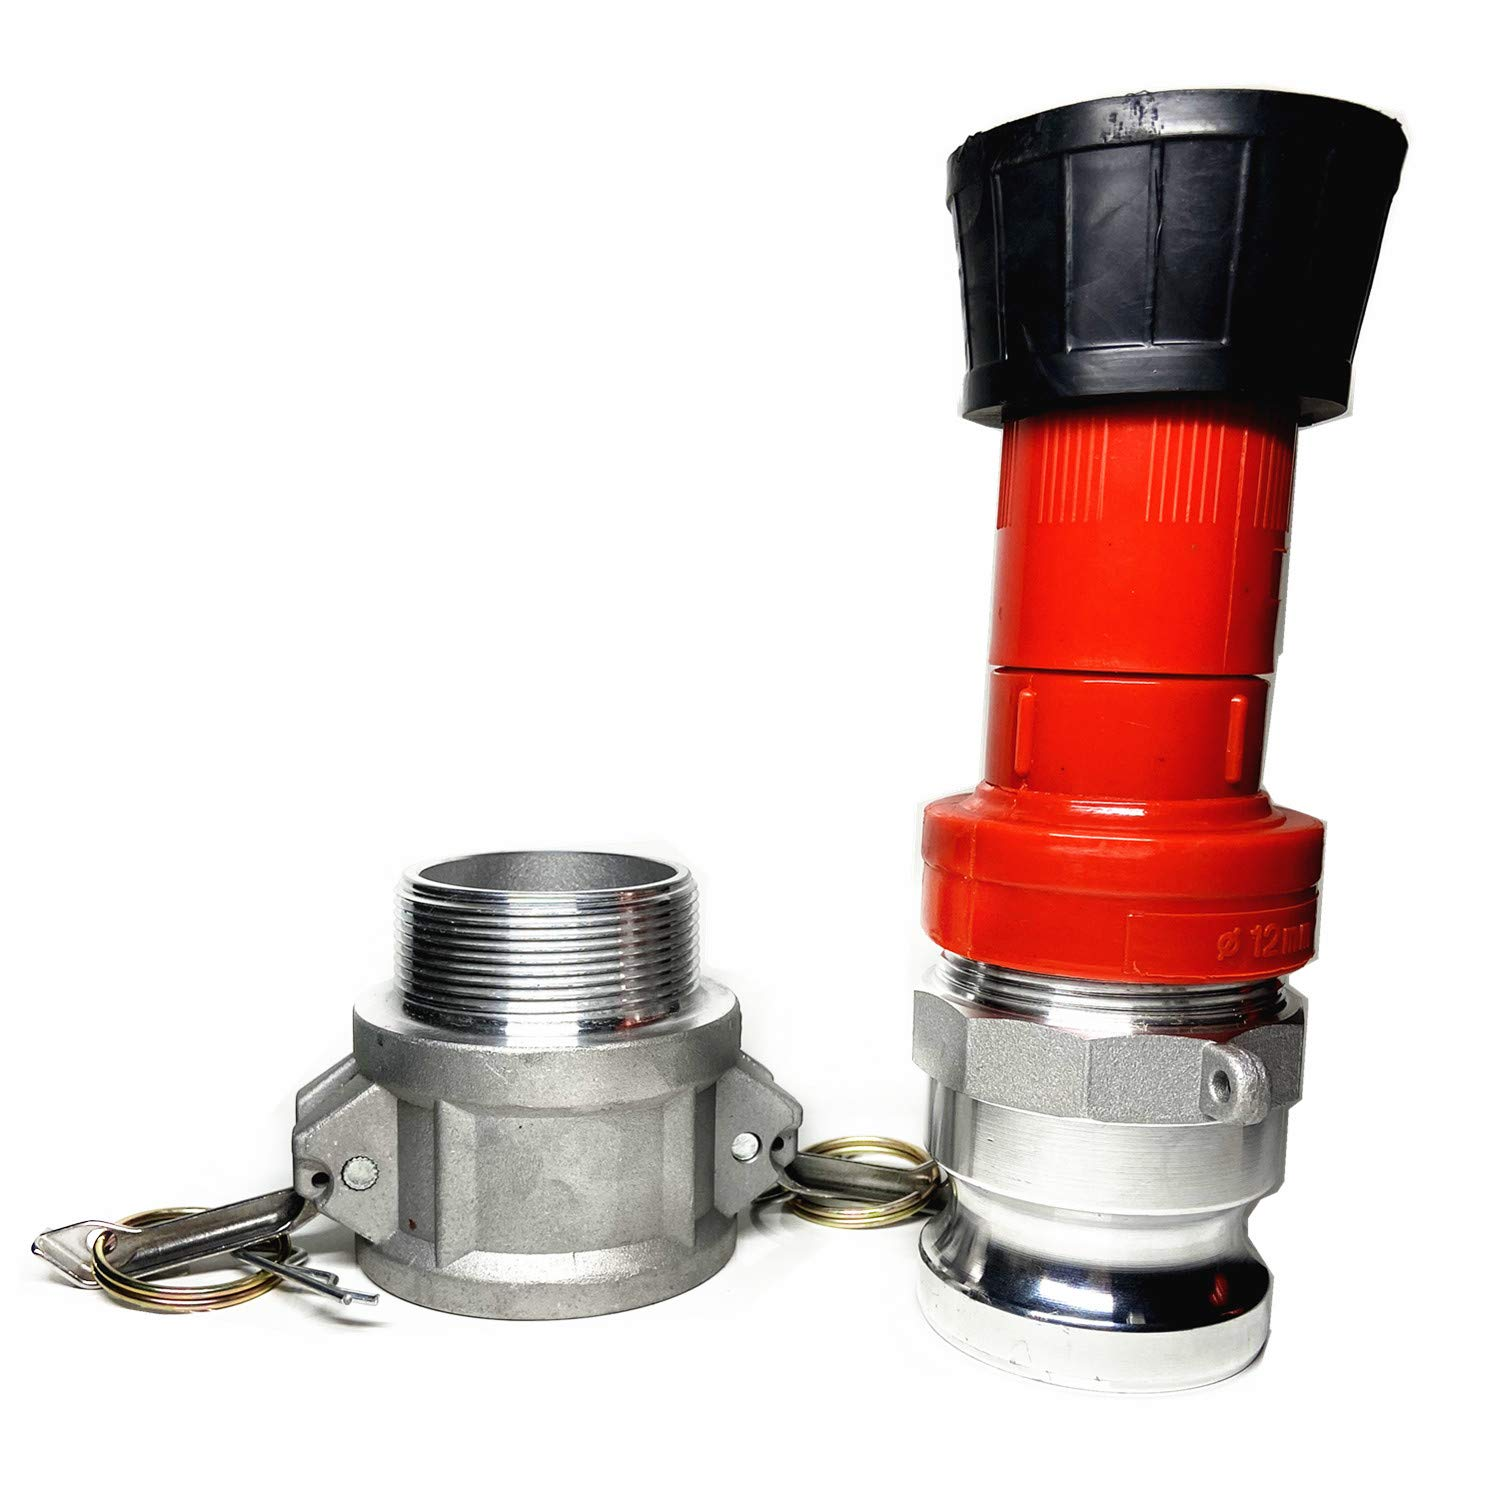 SAFBY Fire Hose Nozzle 1.5 Inch NPSH//NPT Thermoplastic Fire Equipment Spray Jet Fog with 1.5 Inch Aluminum Female and Male Fitting